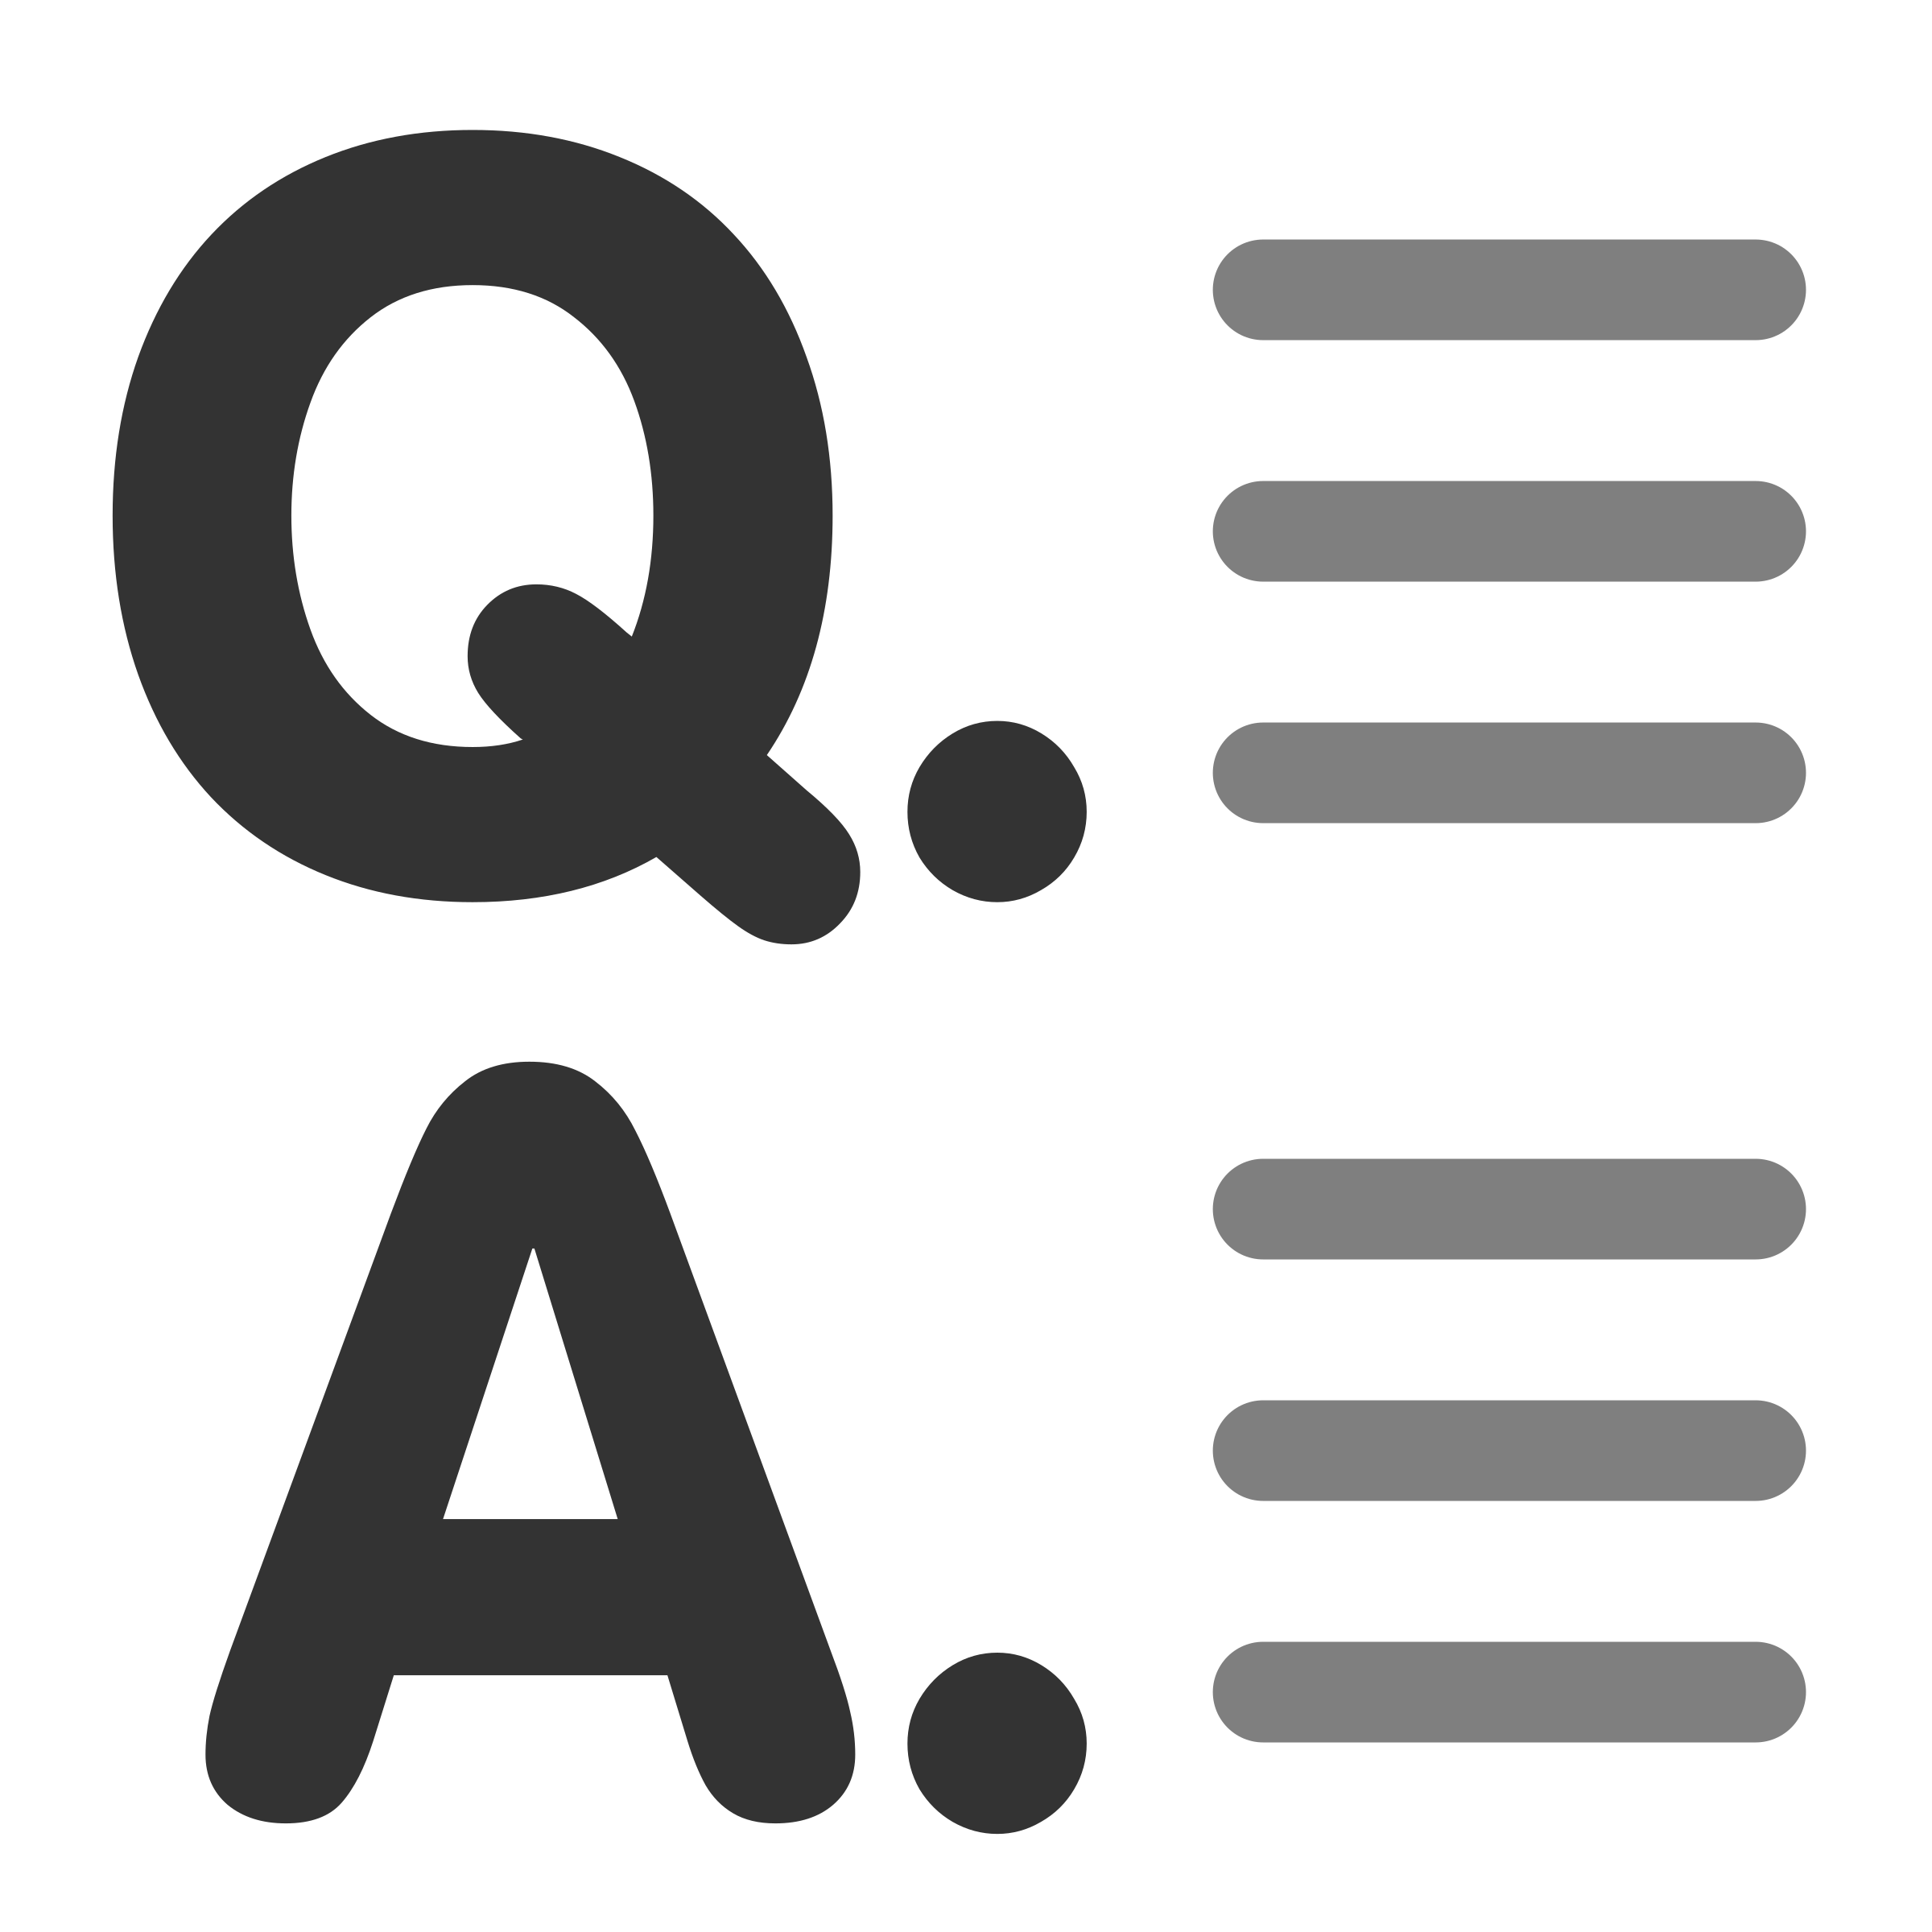 question and answer cute clipart - Clipground